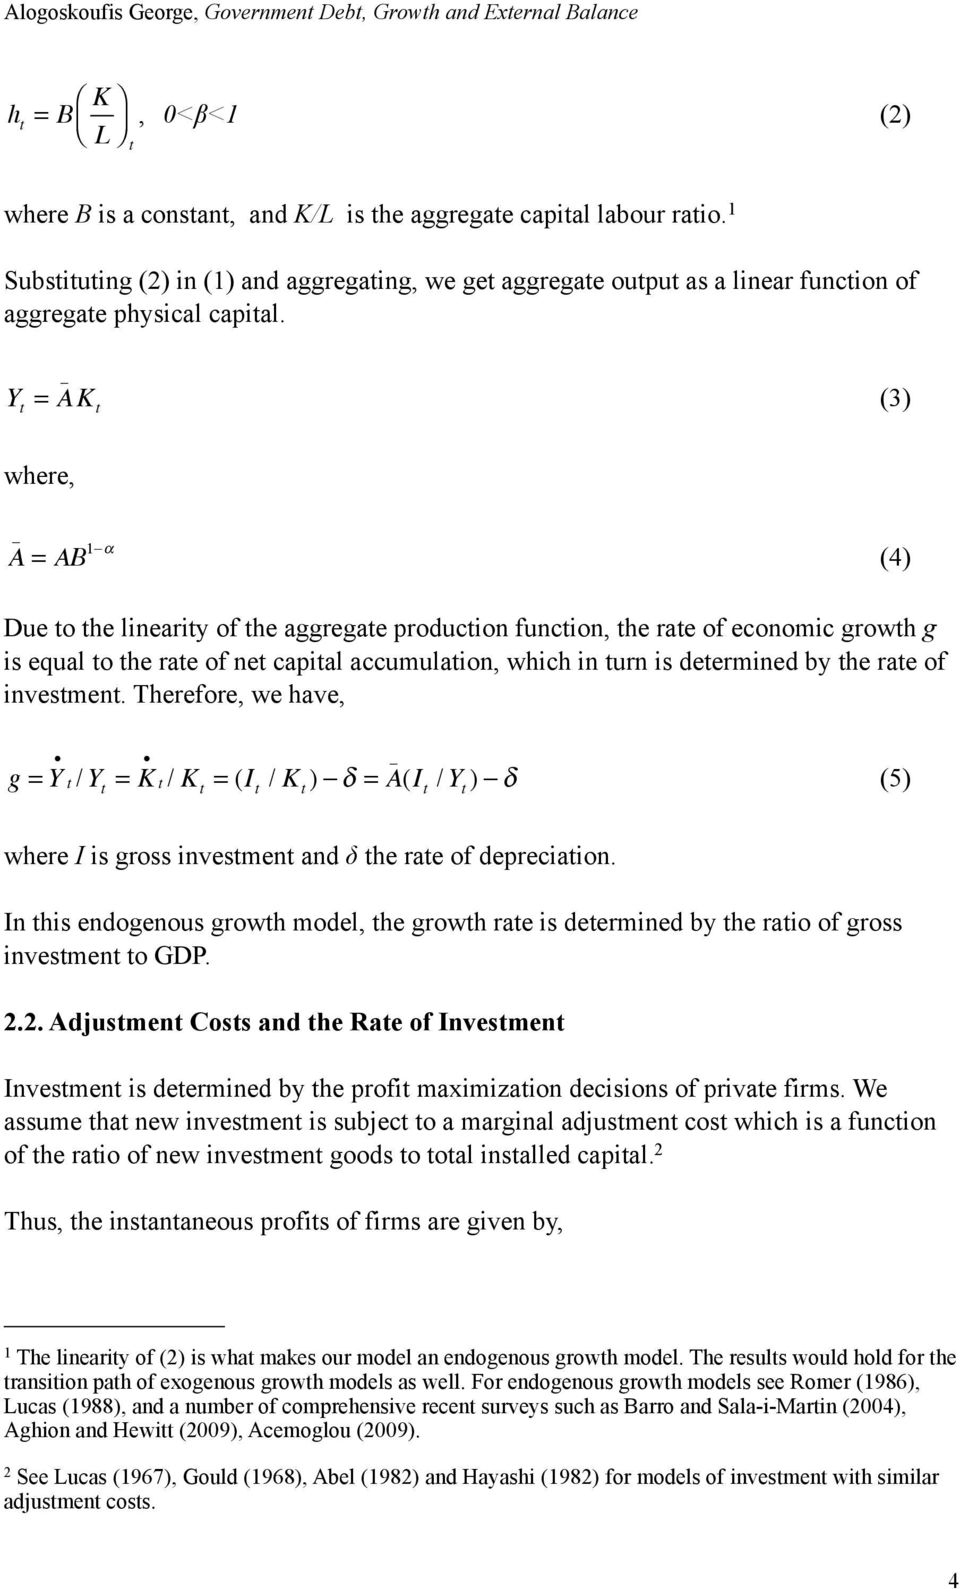 Y t = A _ K t (3) where, A _ = AB 1 α (4) Due to the linearity of the aggregate production function, the rate of economic growth g is equal to the rate of net capital accumulation, which in turn is